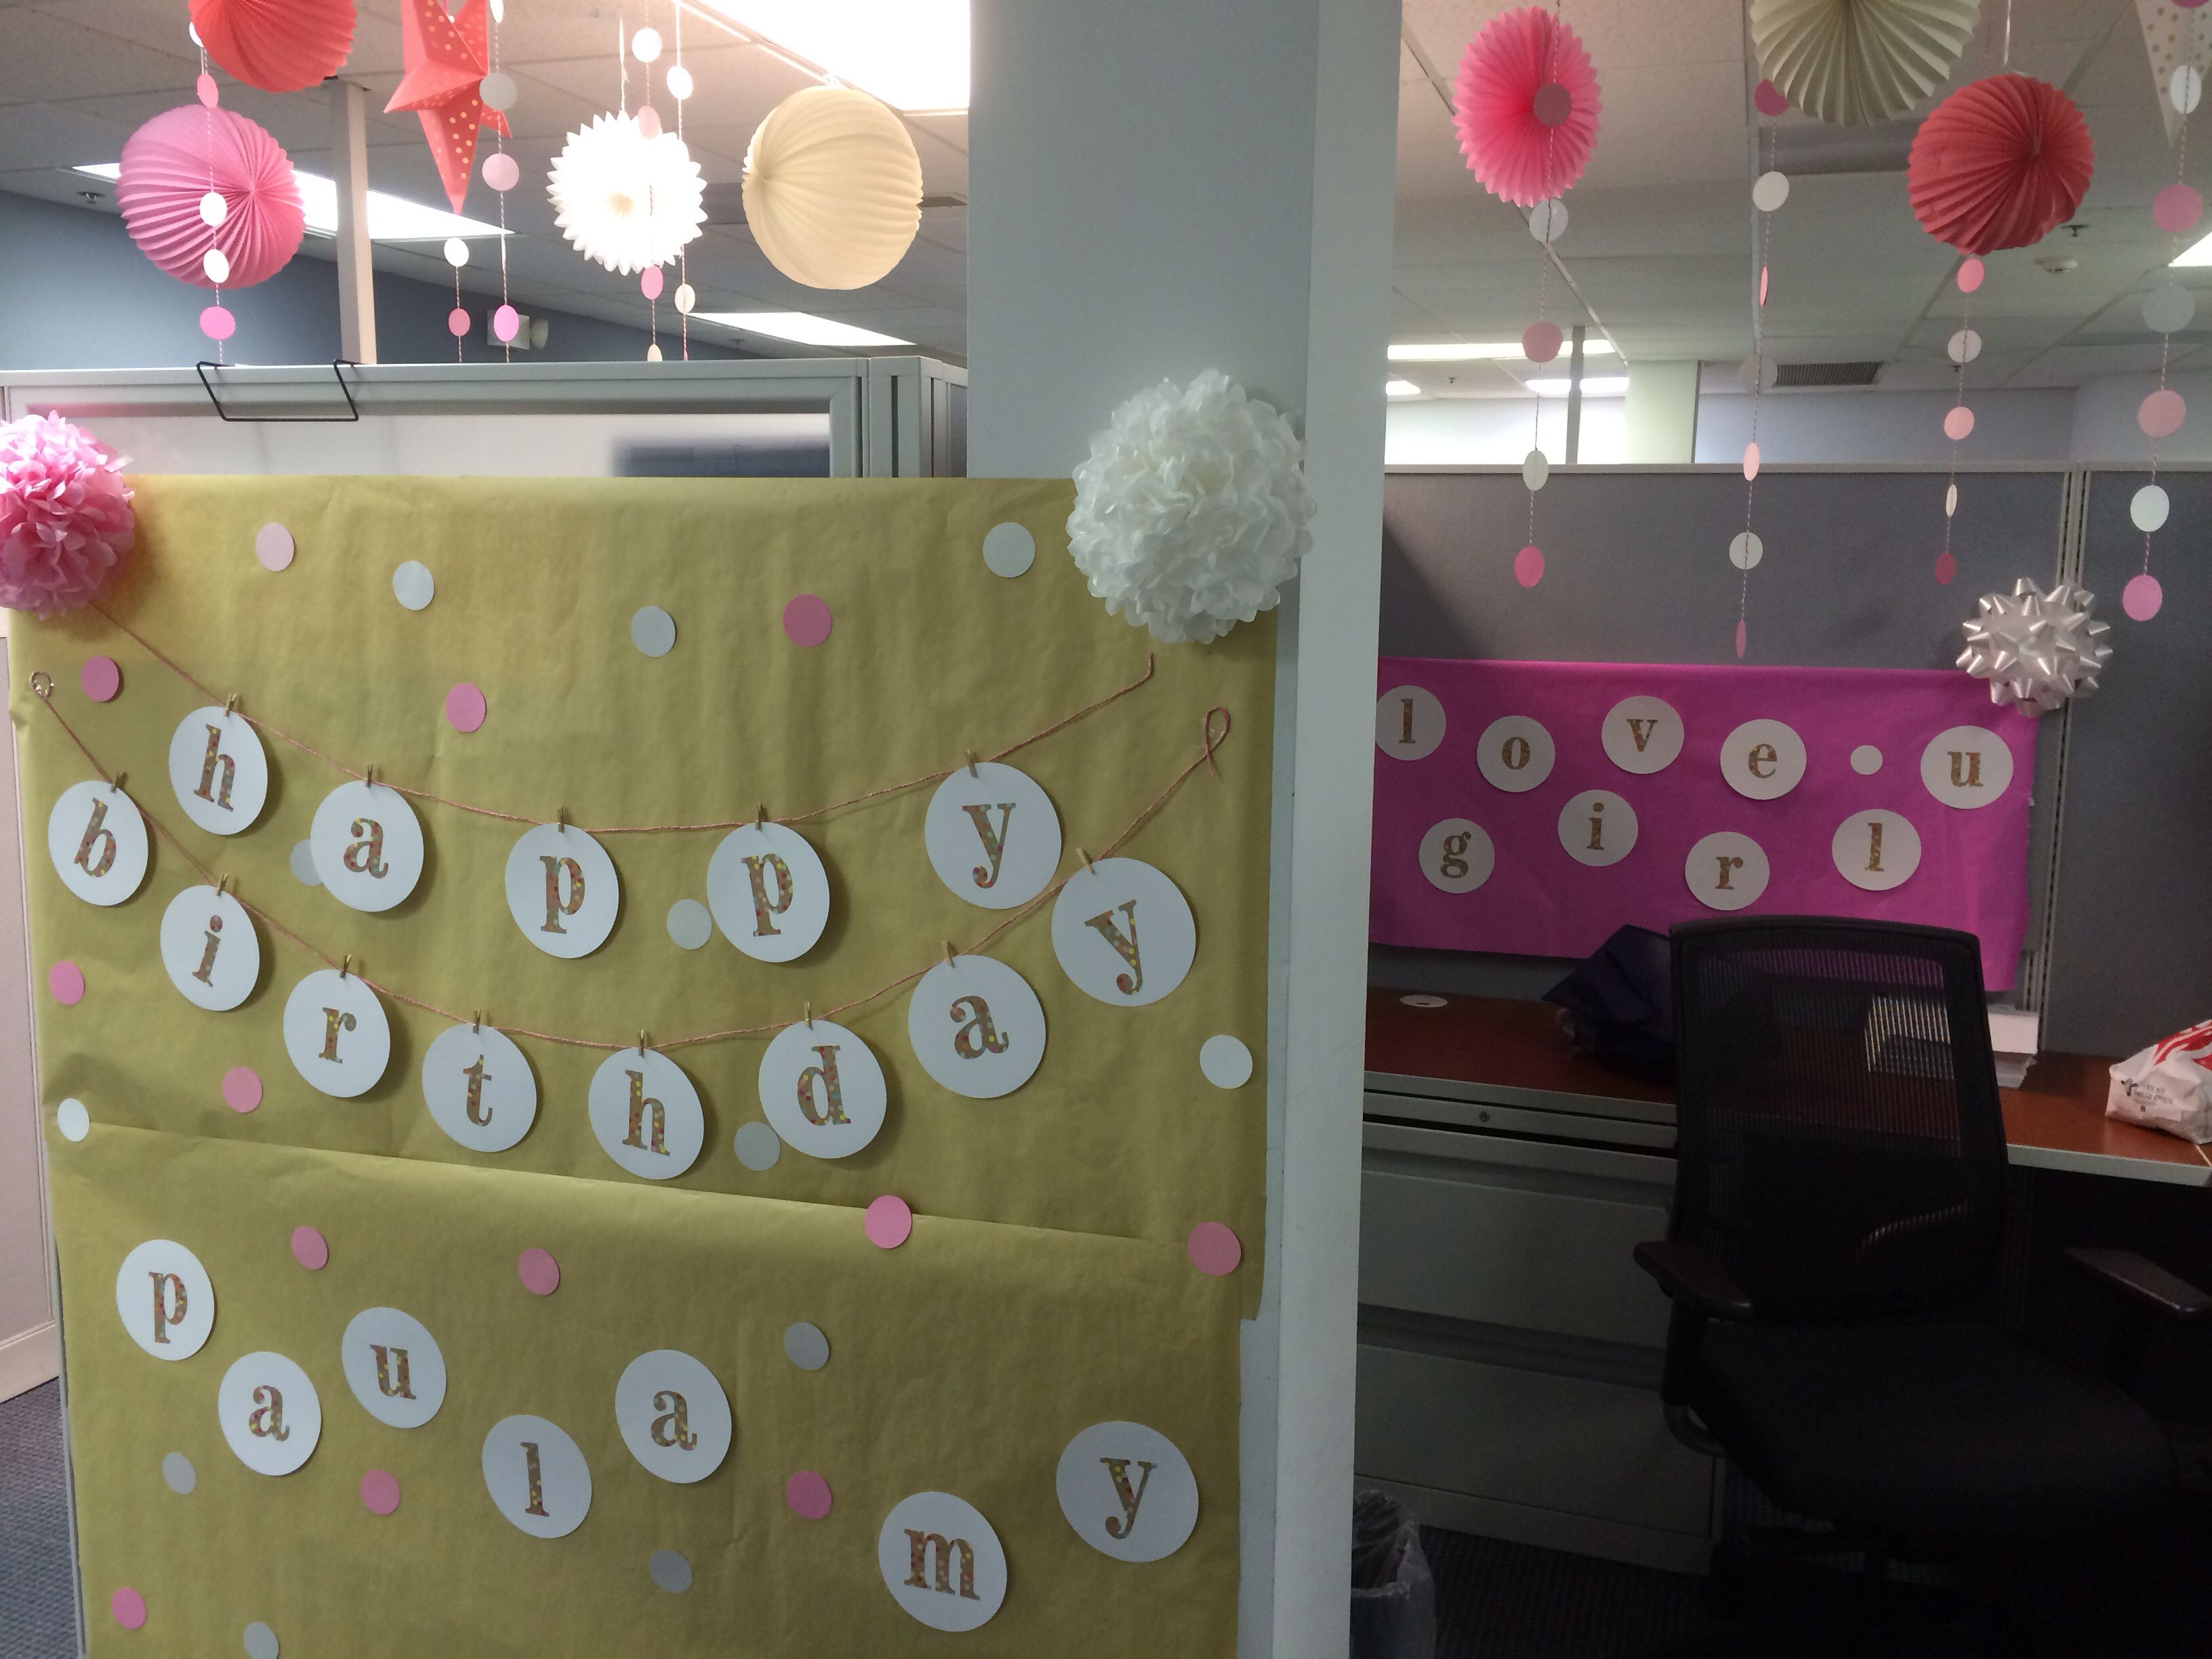 Cubicle Decorations For Birthday 20 Creative Diy Cubicle Decorating Ideas The Office Creative